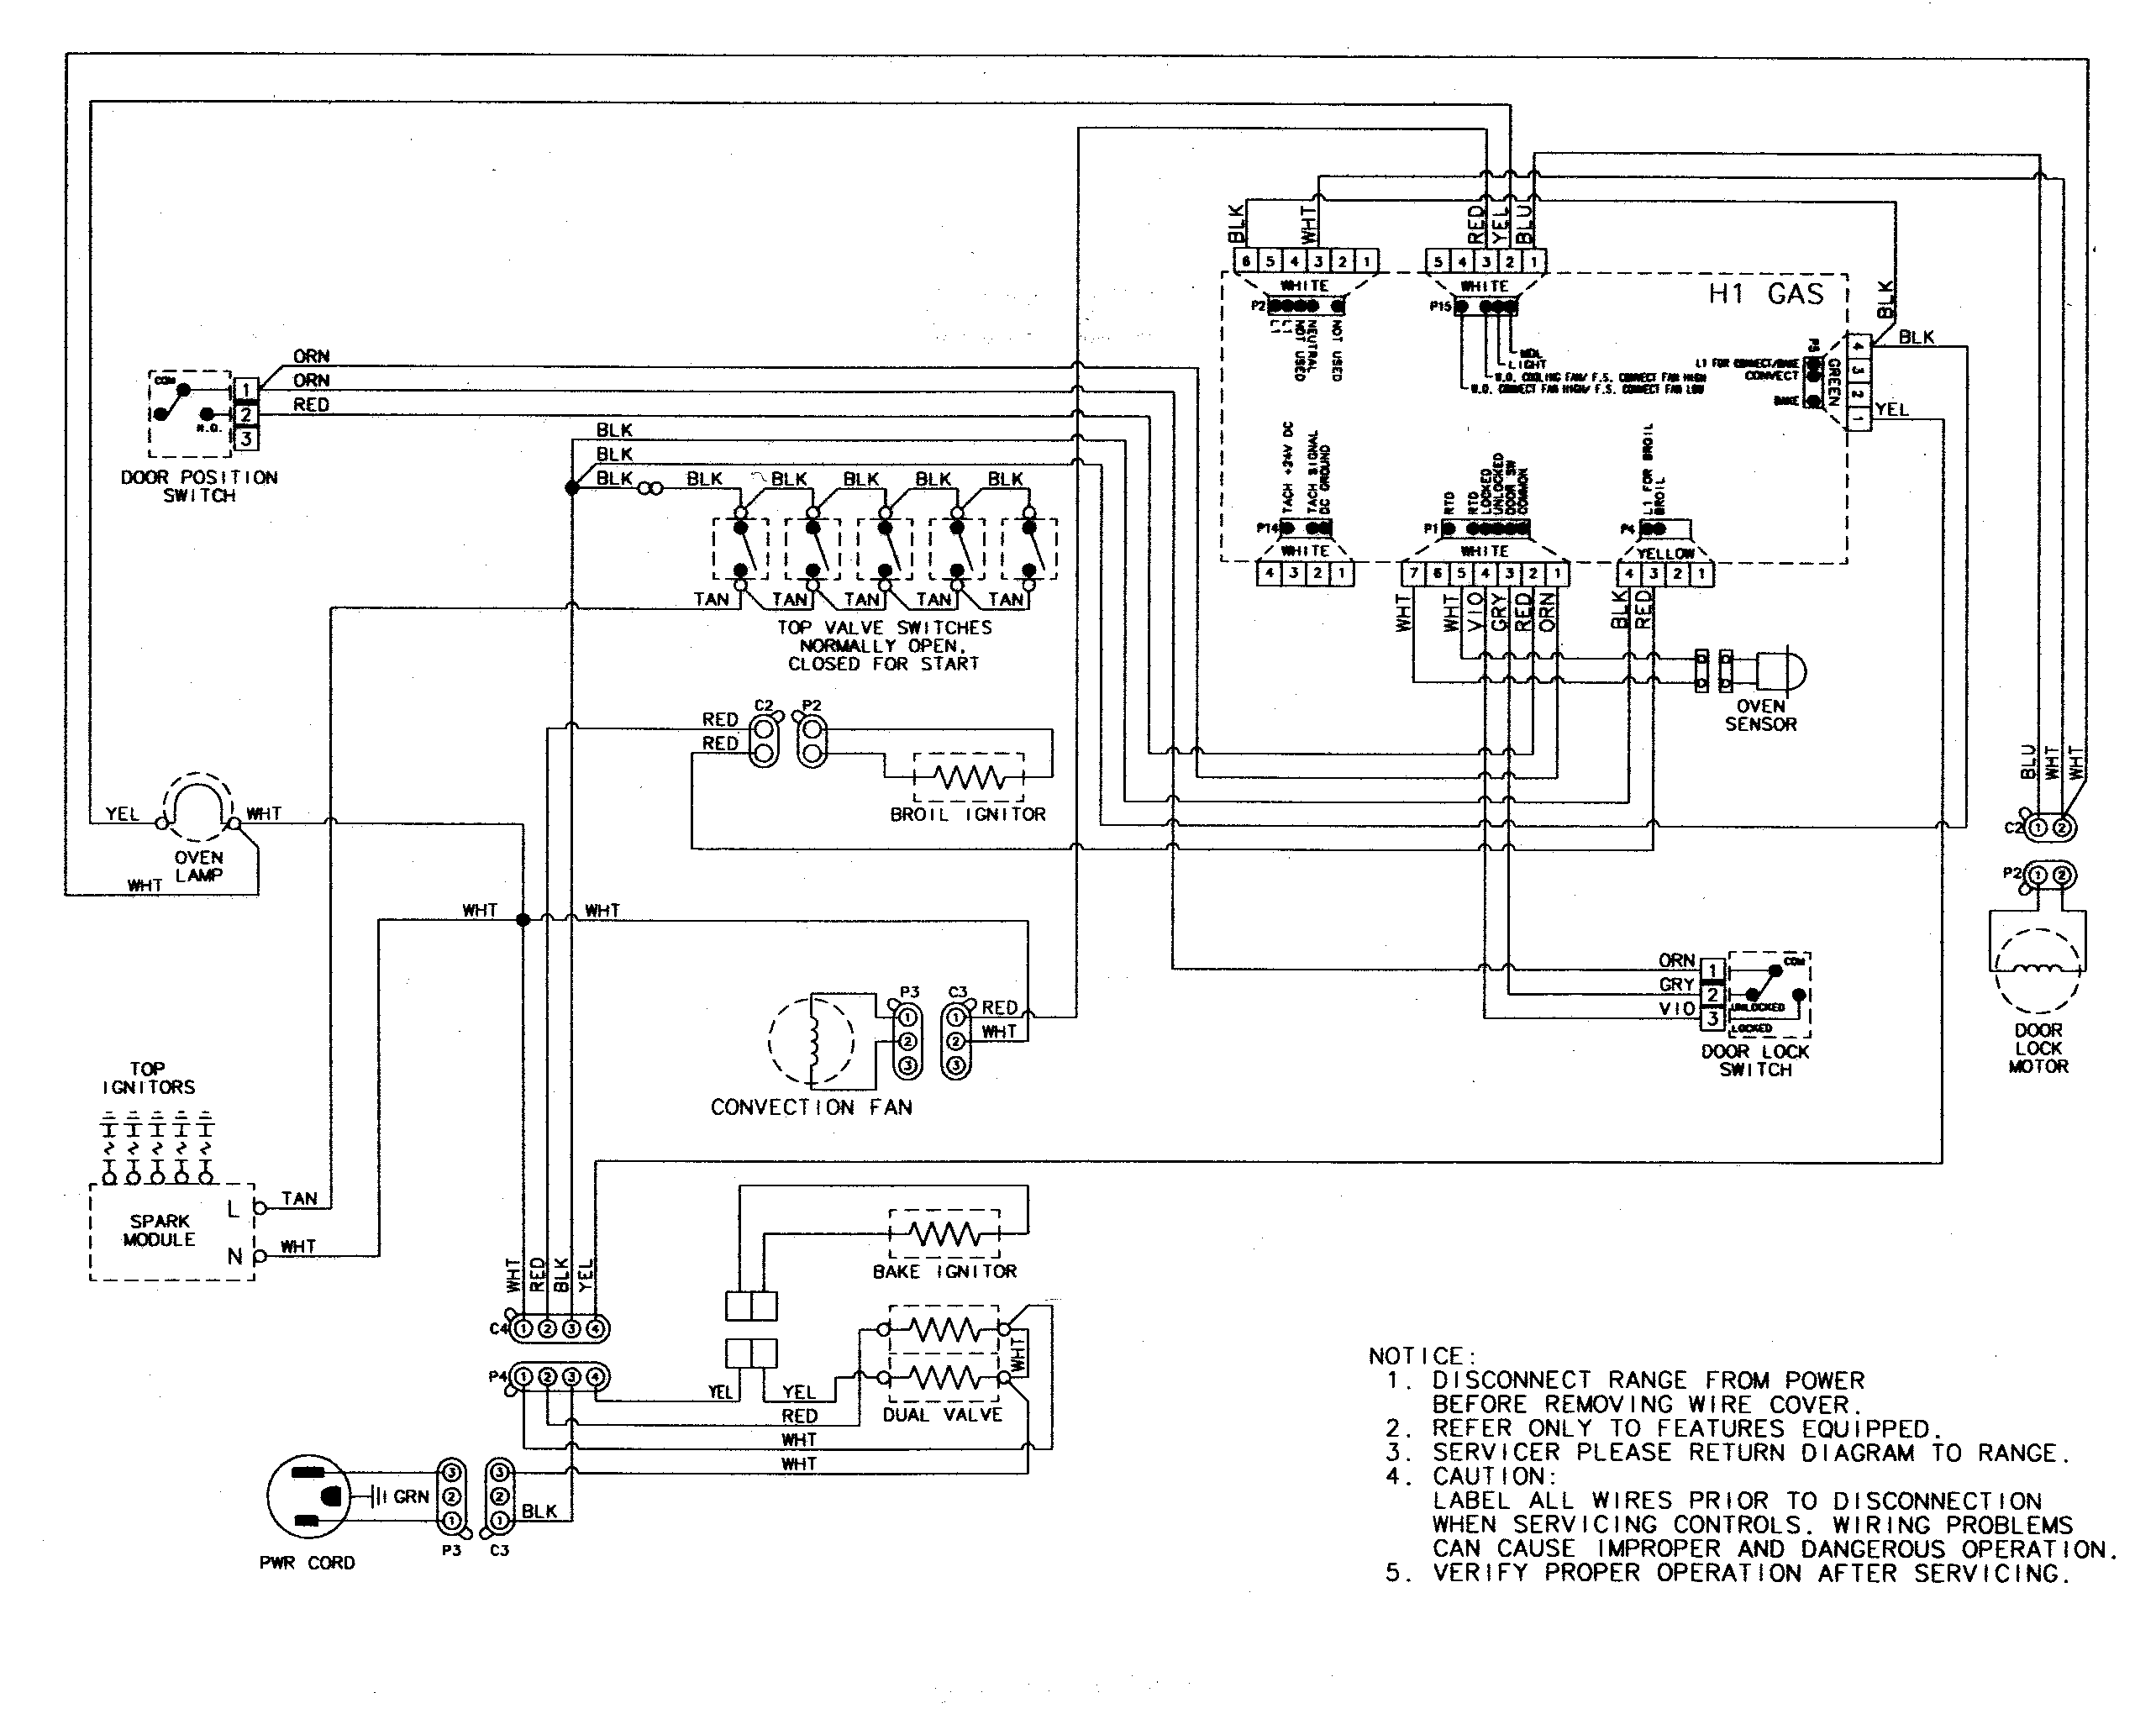 [SCHEMATICS_4US]  Ge Range Wiring Diagram | Wiring Diagram | Wiring Diagram For Ge Cooktop |  | Wiring Diagrams - AutoScout24